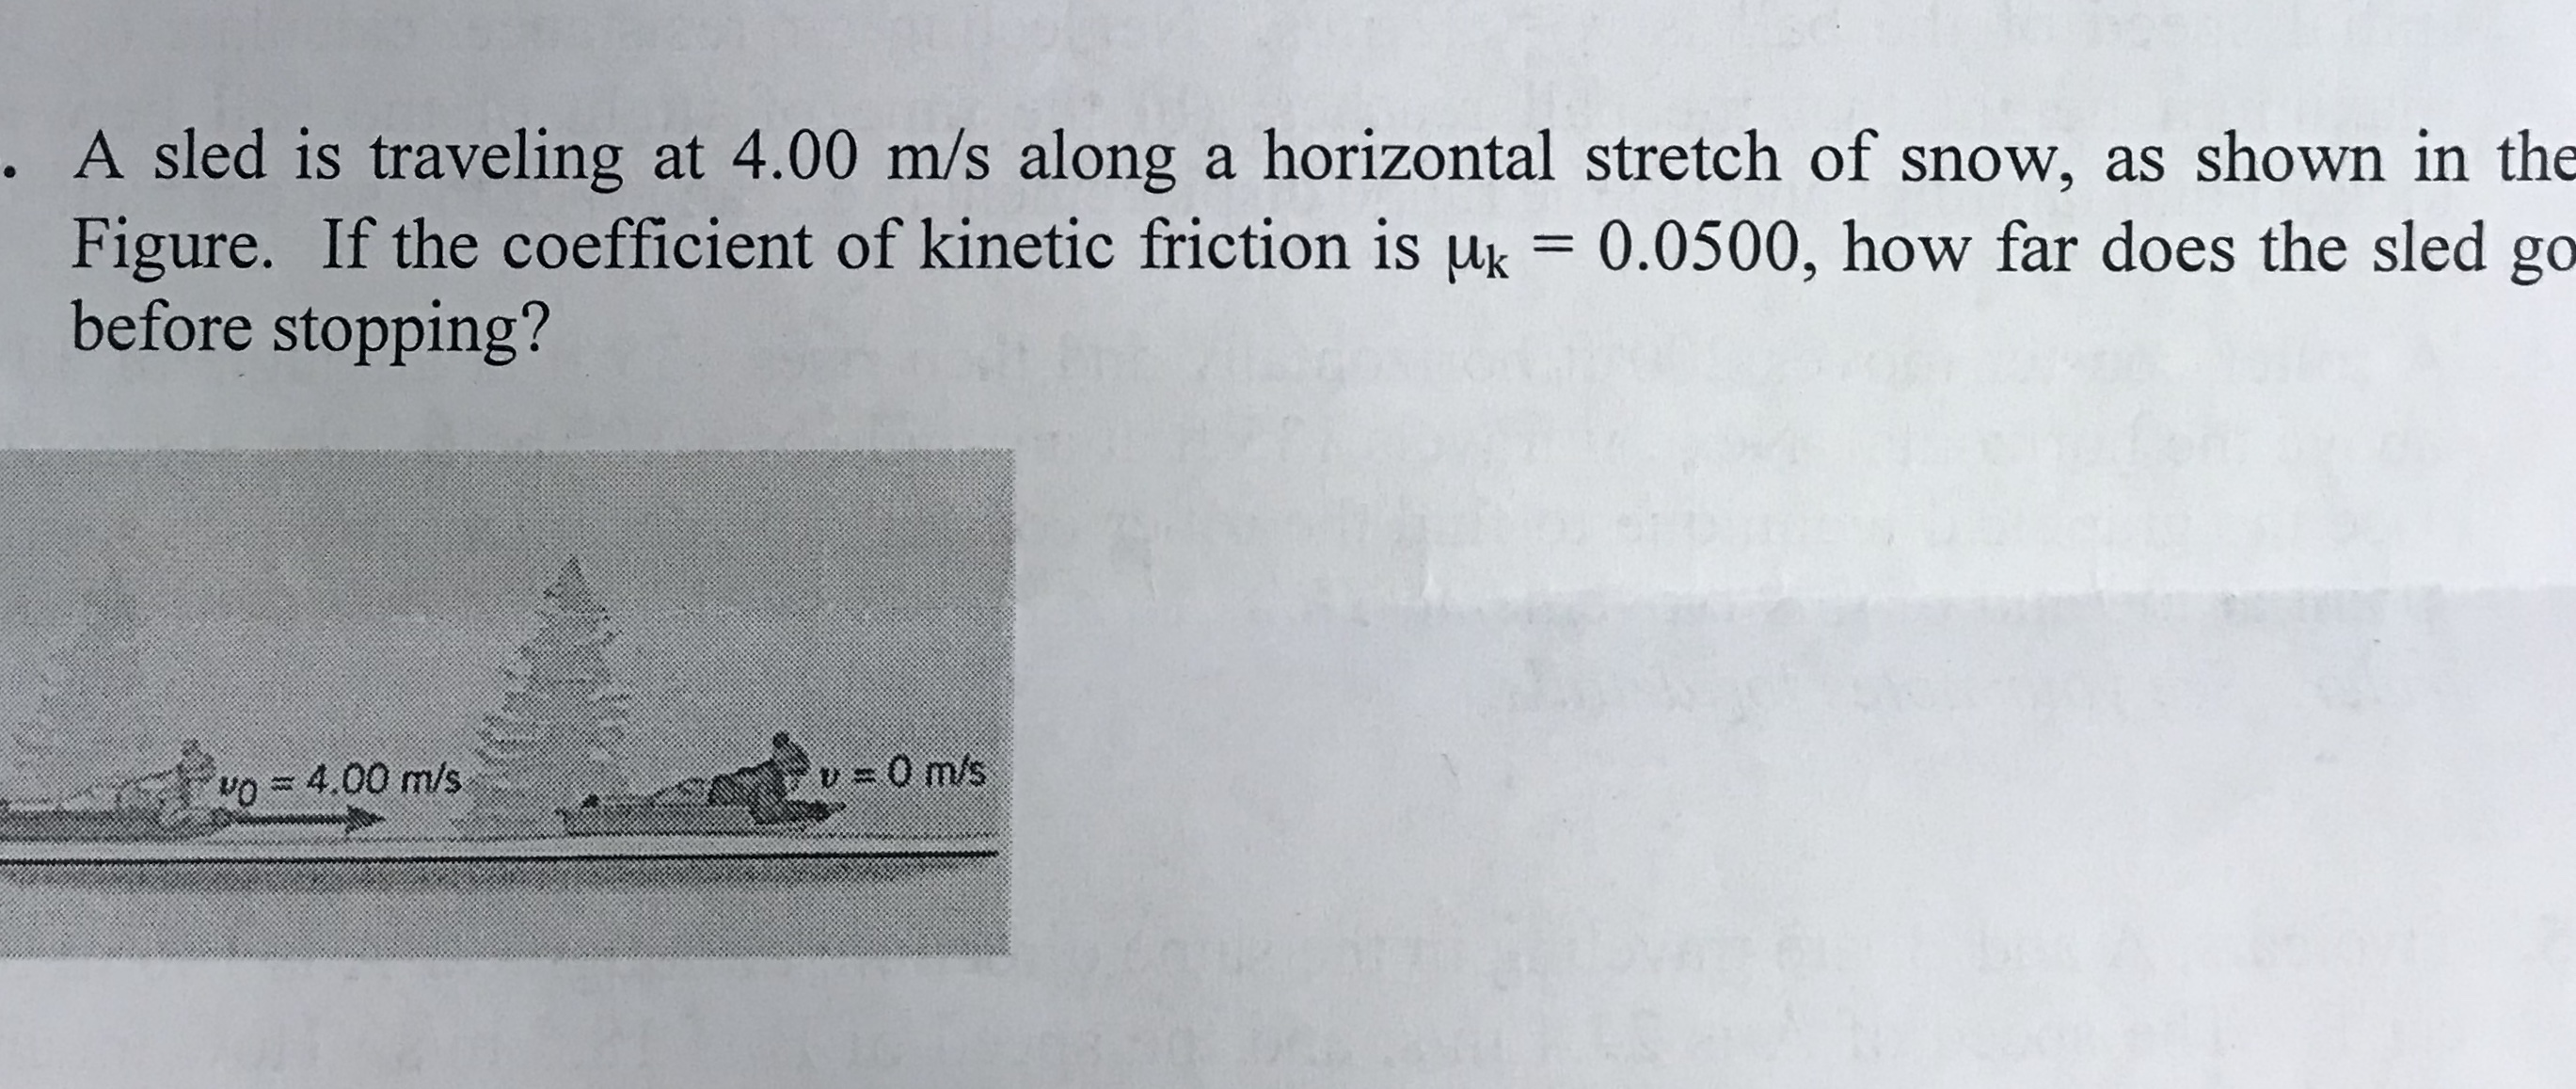 . A sled is traveling at 4.00 m/s along a horizontal stretch of snow, as shown in the Figure. If the coefficient of kinetic friction is μ,-0.0500, how far does the sled go before stopping? o4.00 m/s